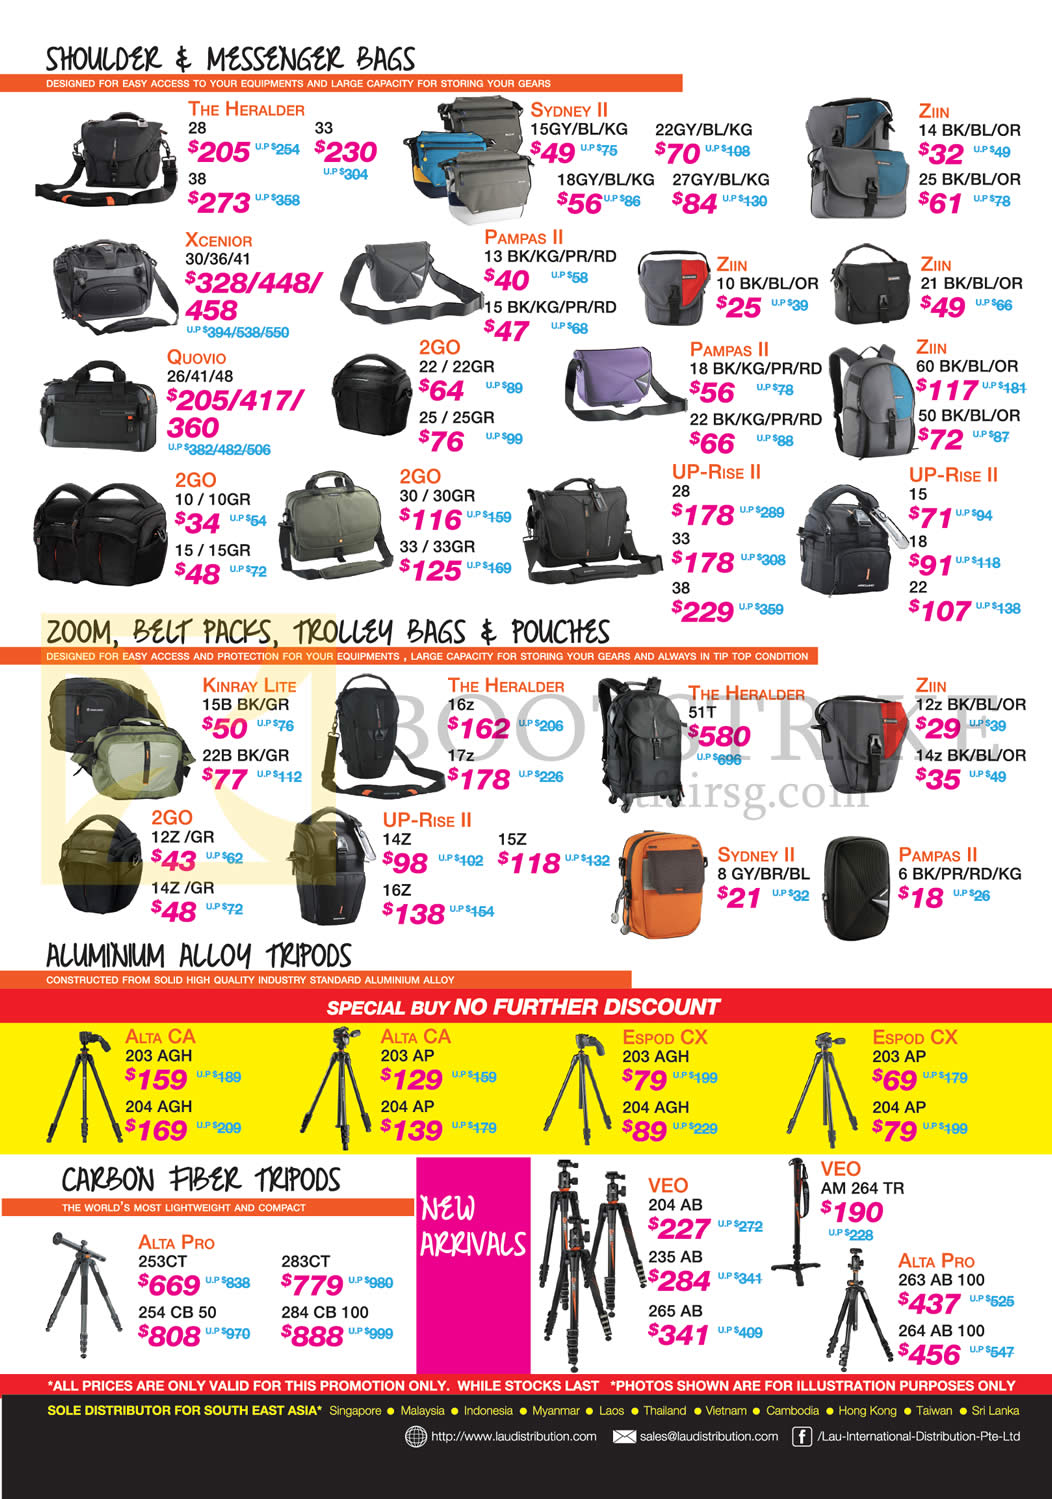 Lau Intl Shoulder, Messenger Bags, Zoom Belt Packs, Trolley Bags, Pouches, Aluminium Alloy Tripods, Carbon Fiber Tripods